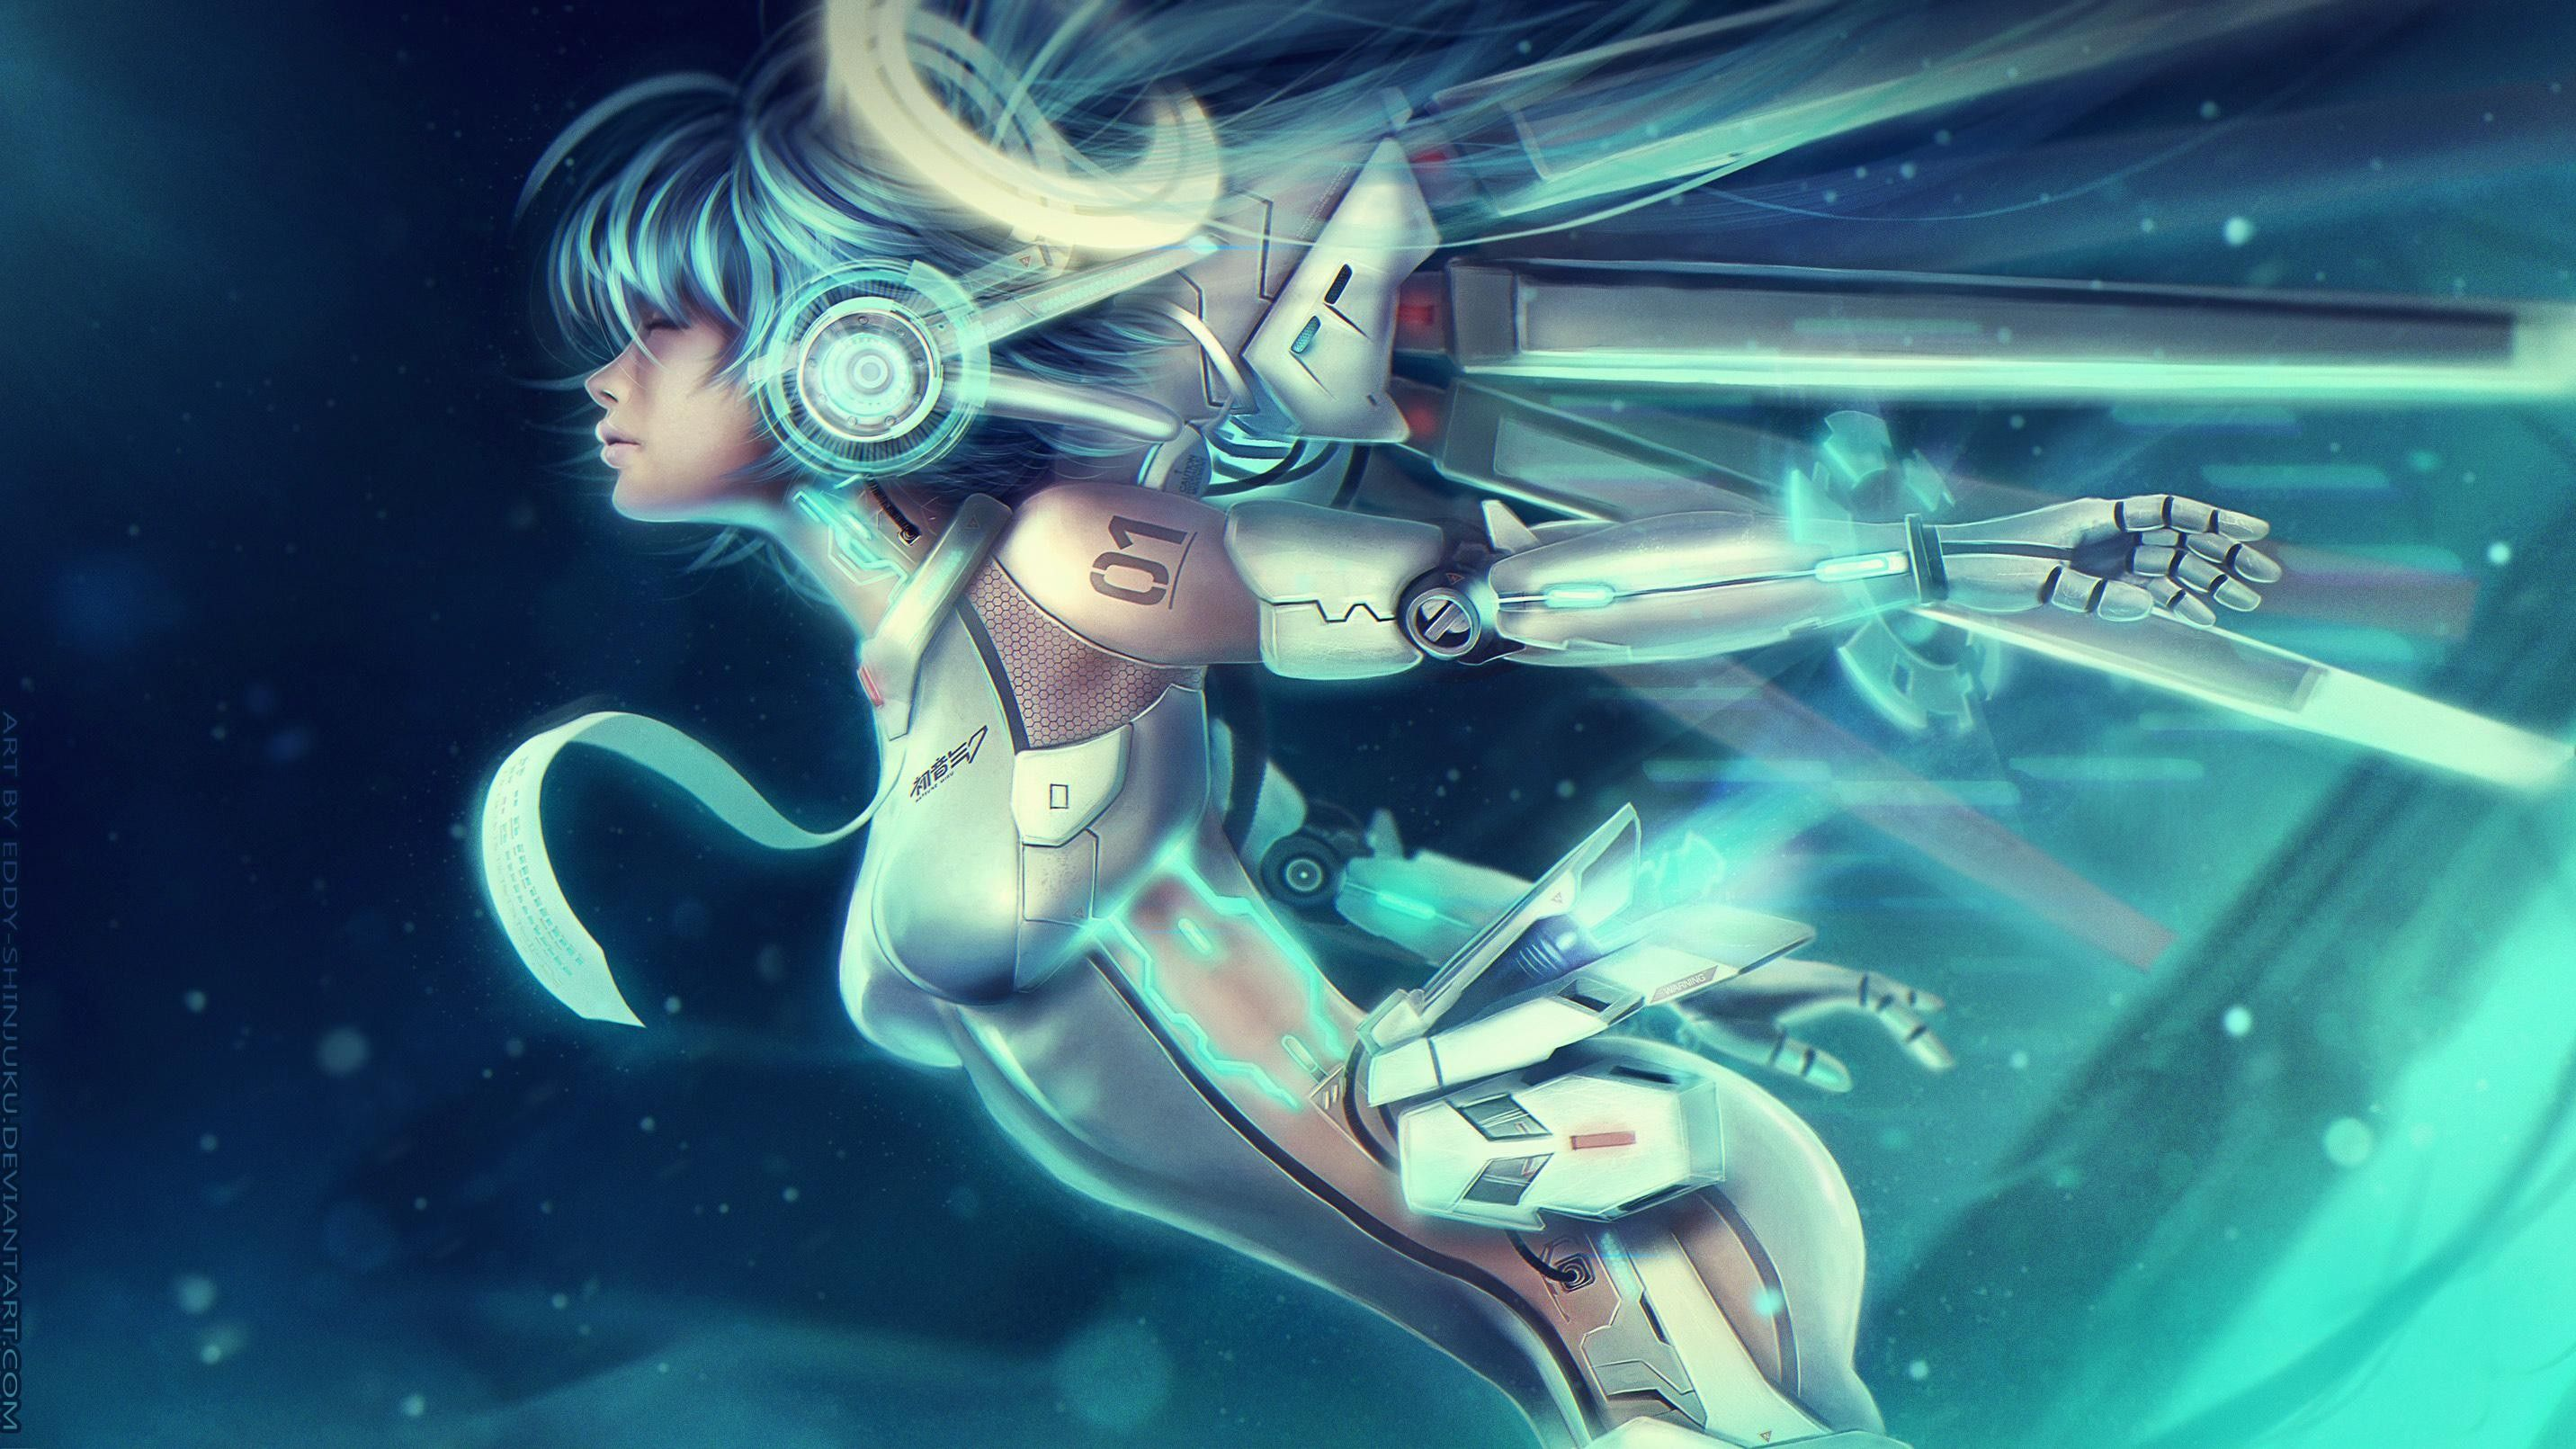 Vocaloid iphone wallpaper tumblr - Wallpapers